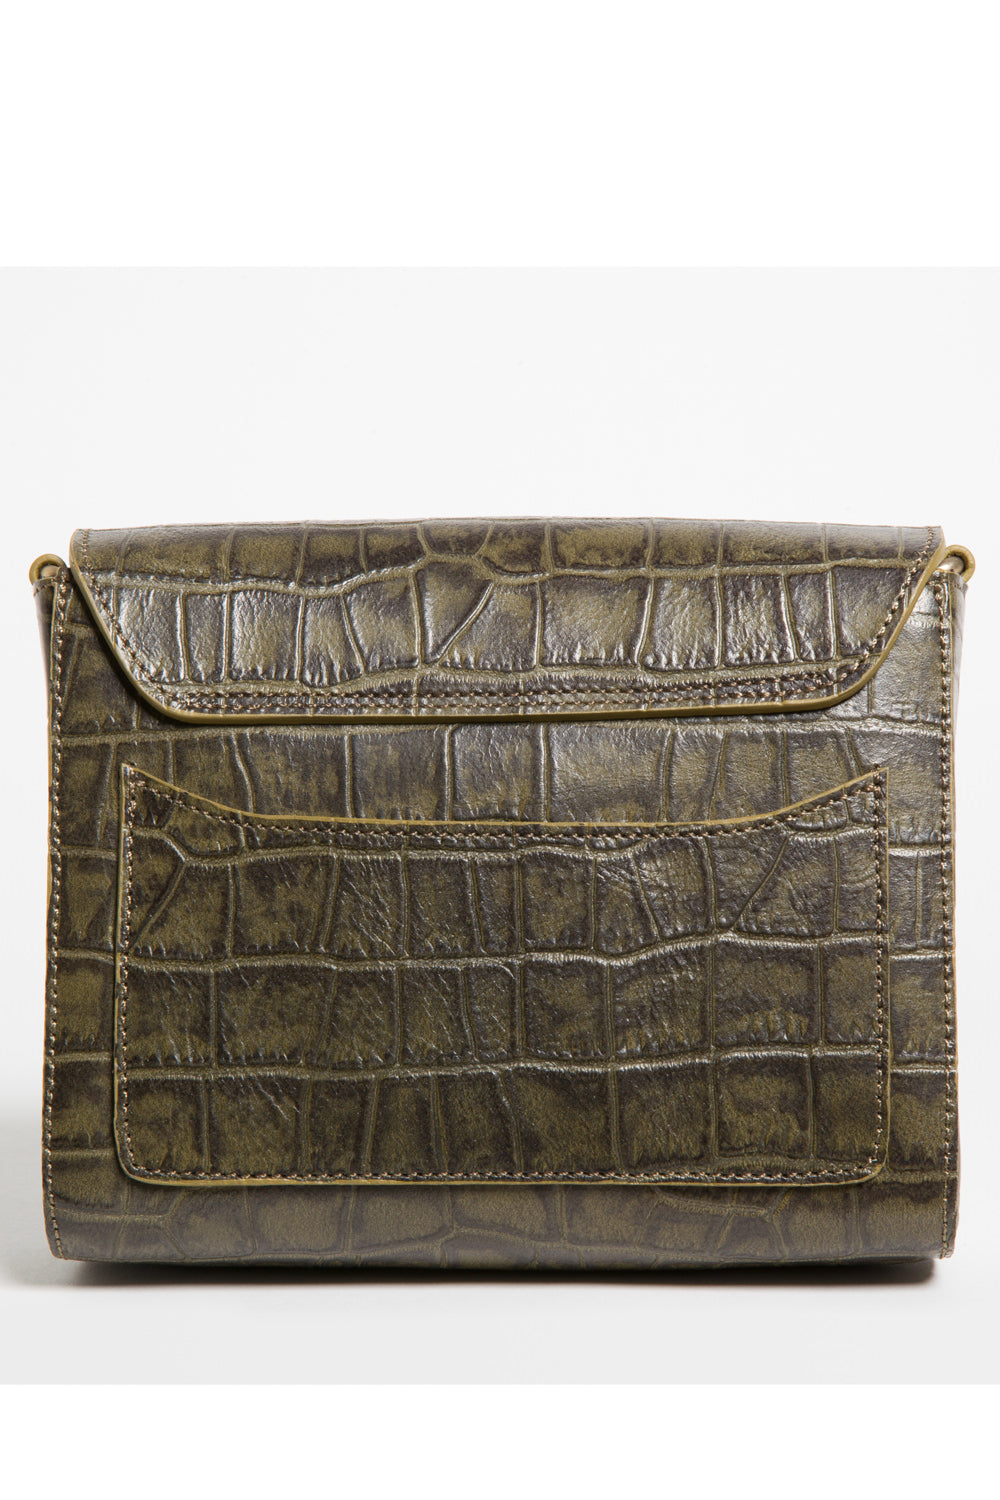 'Gema' Small Shoulder Bag in Green Moss, Croc-Emboss Leather | Mel Boteri | Back View